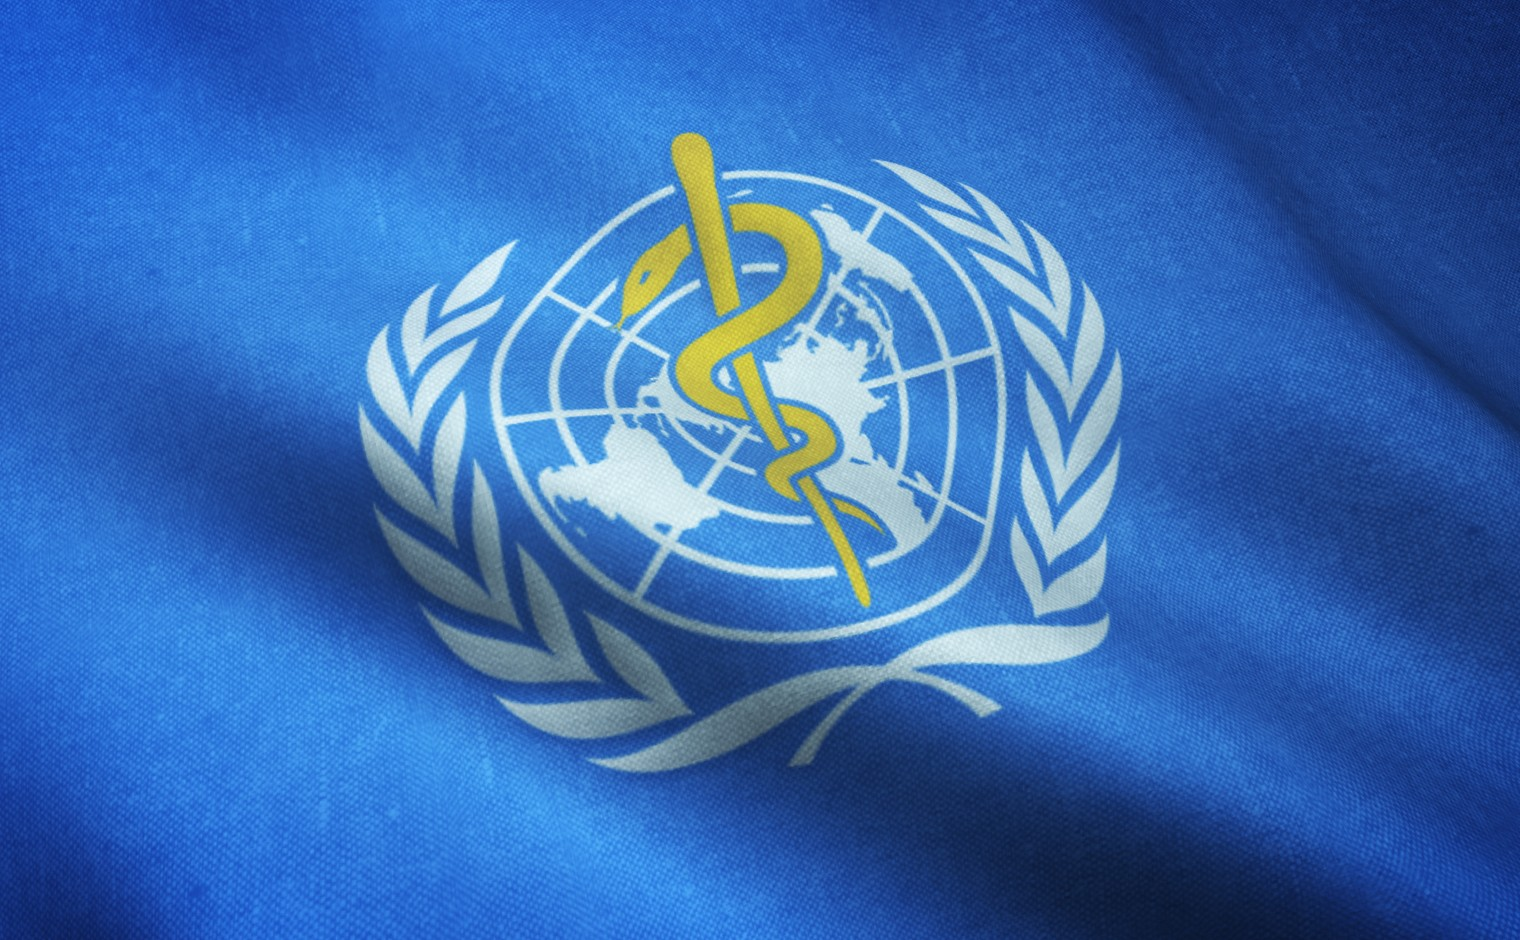 Vlag van de World Health Organization (WHO)